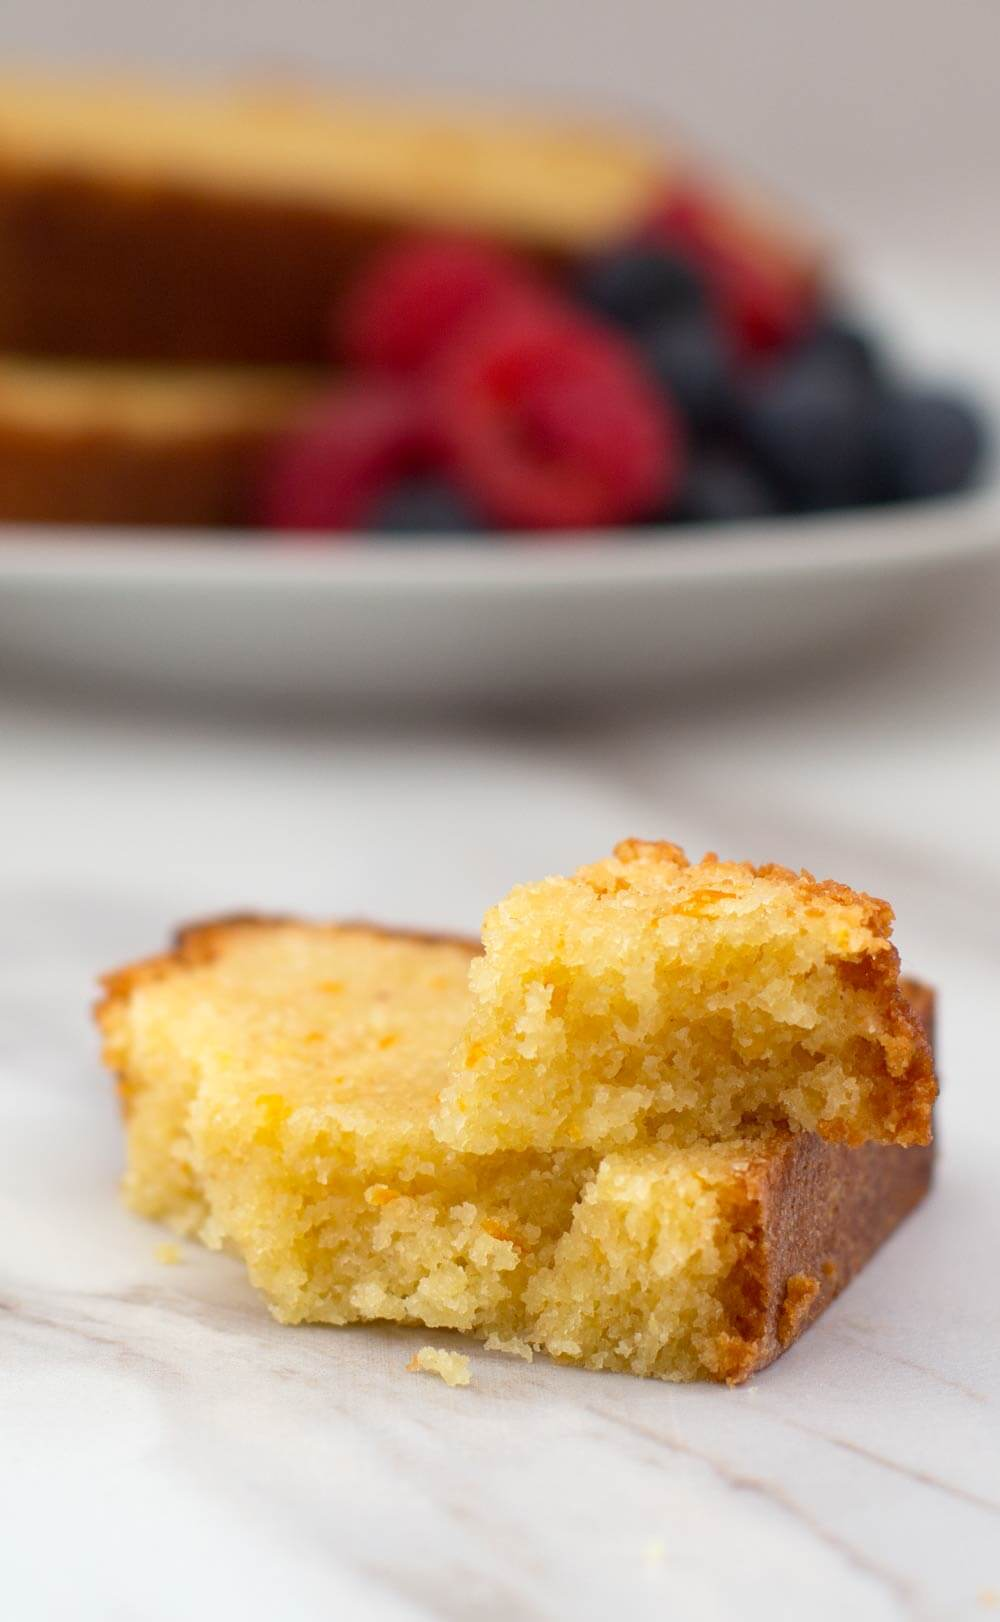 piece of Passover orange-scented loaf cake with fruit